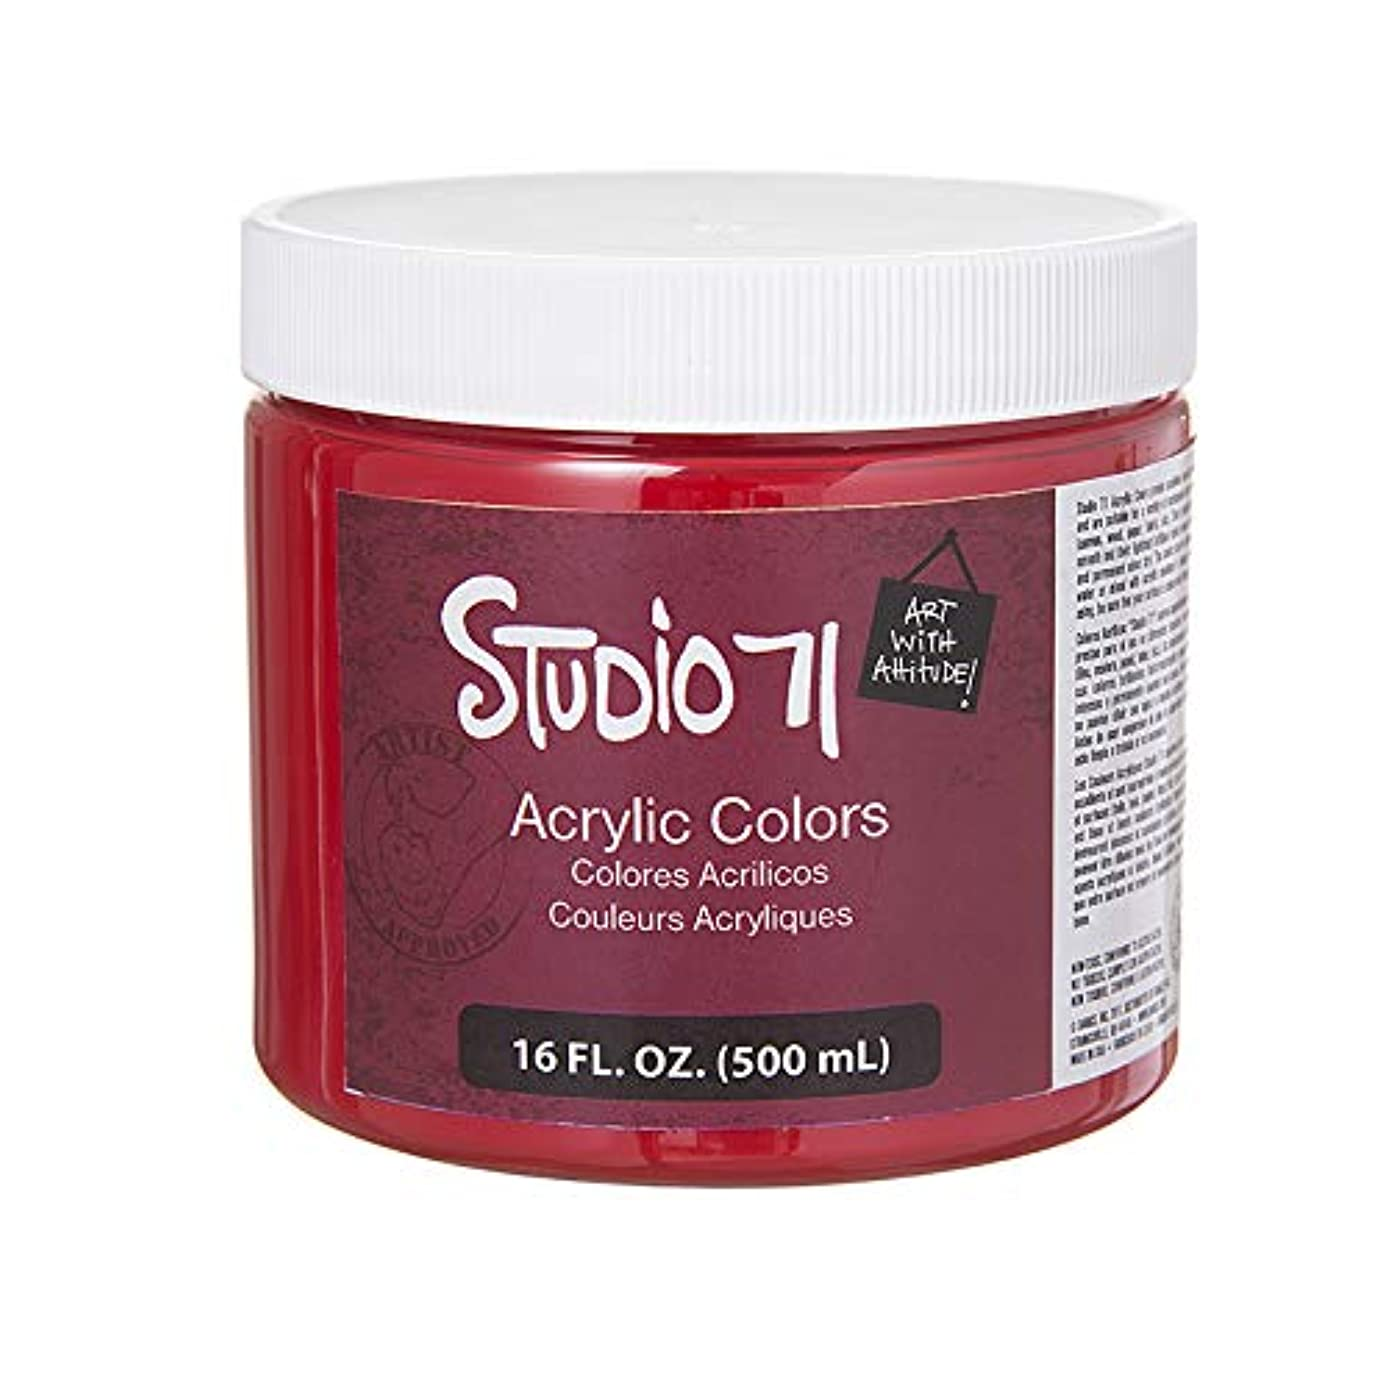 Darice 13943 Studio 71 Cadmium Red Hue, 16 fl oz Acrylic Paint,